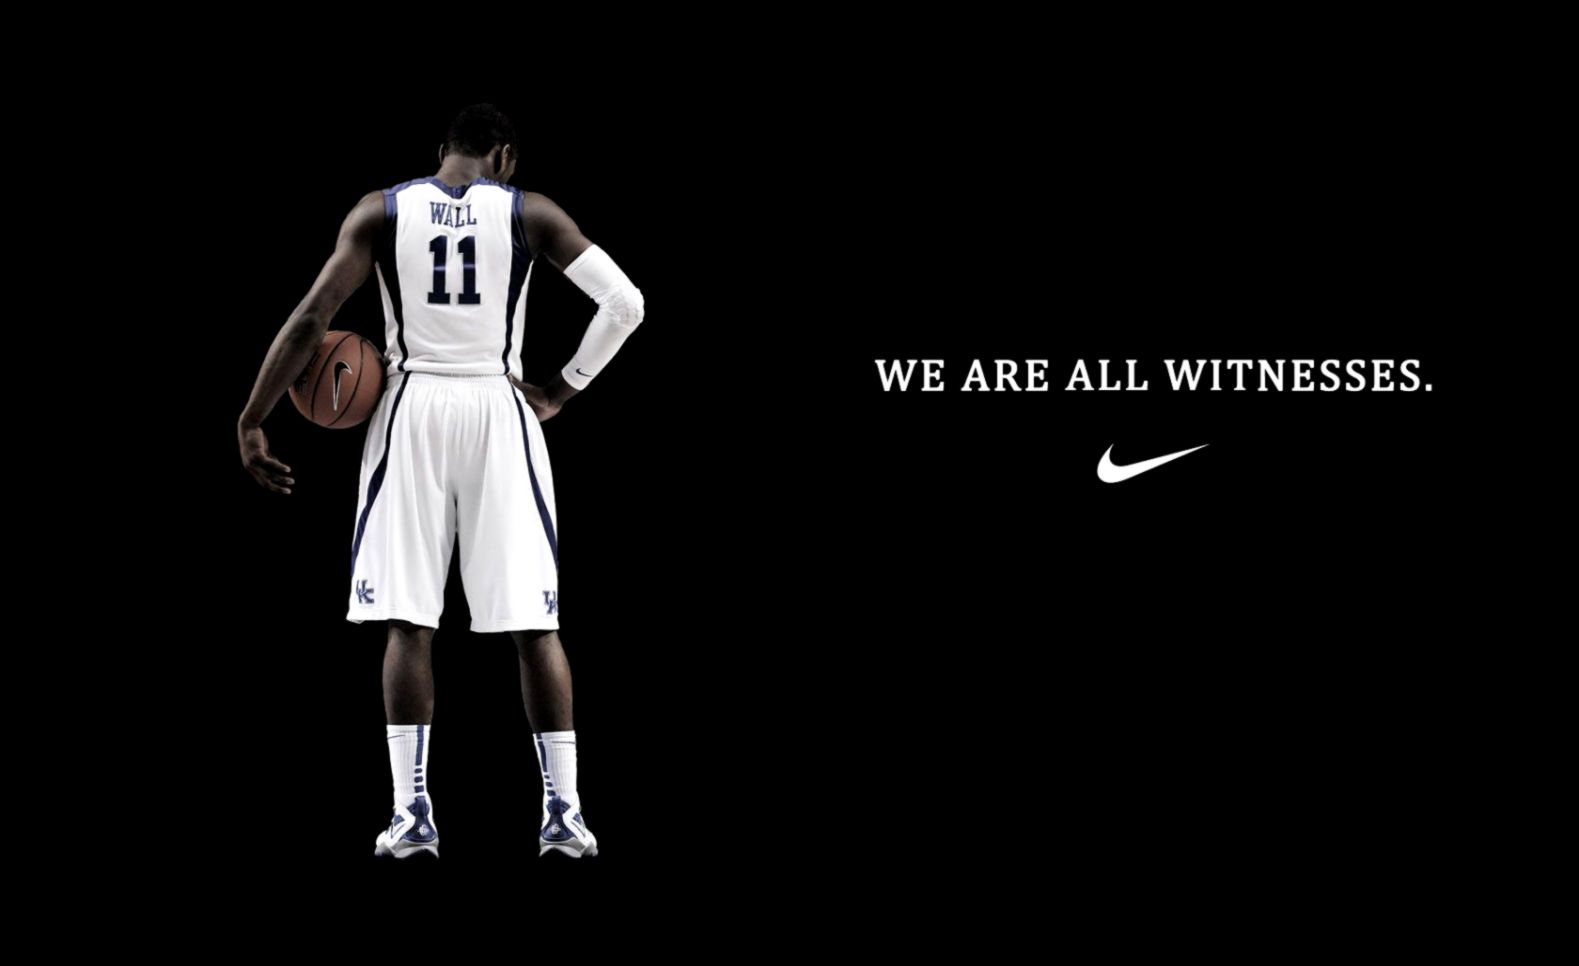 Nike Basketball Wallpaper | HD Wallpapers Collection